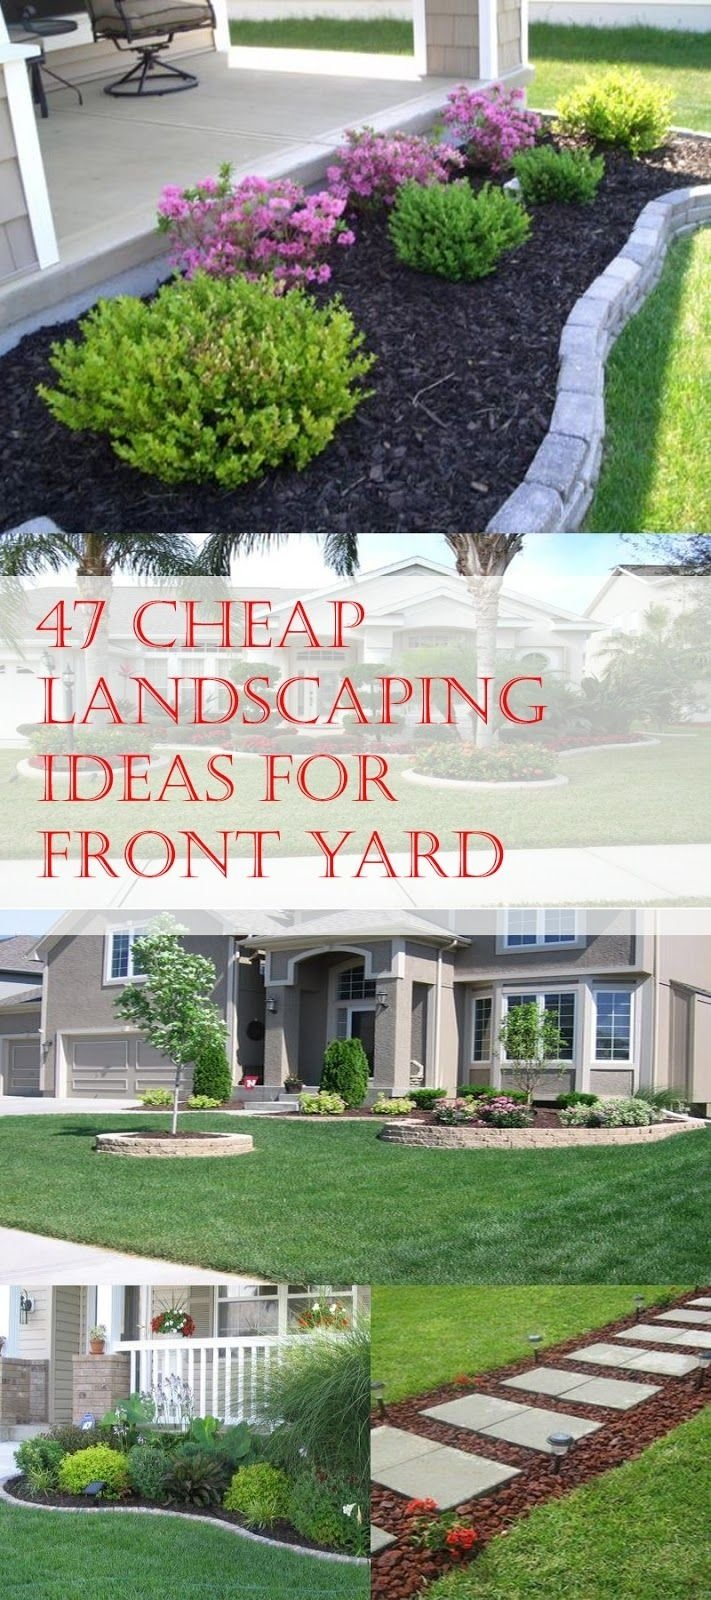 10 Spectacular Cheap Landscaping Ideas For Front Yard